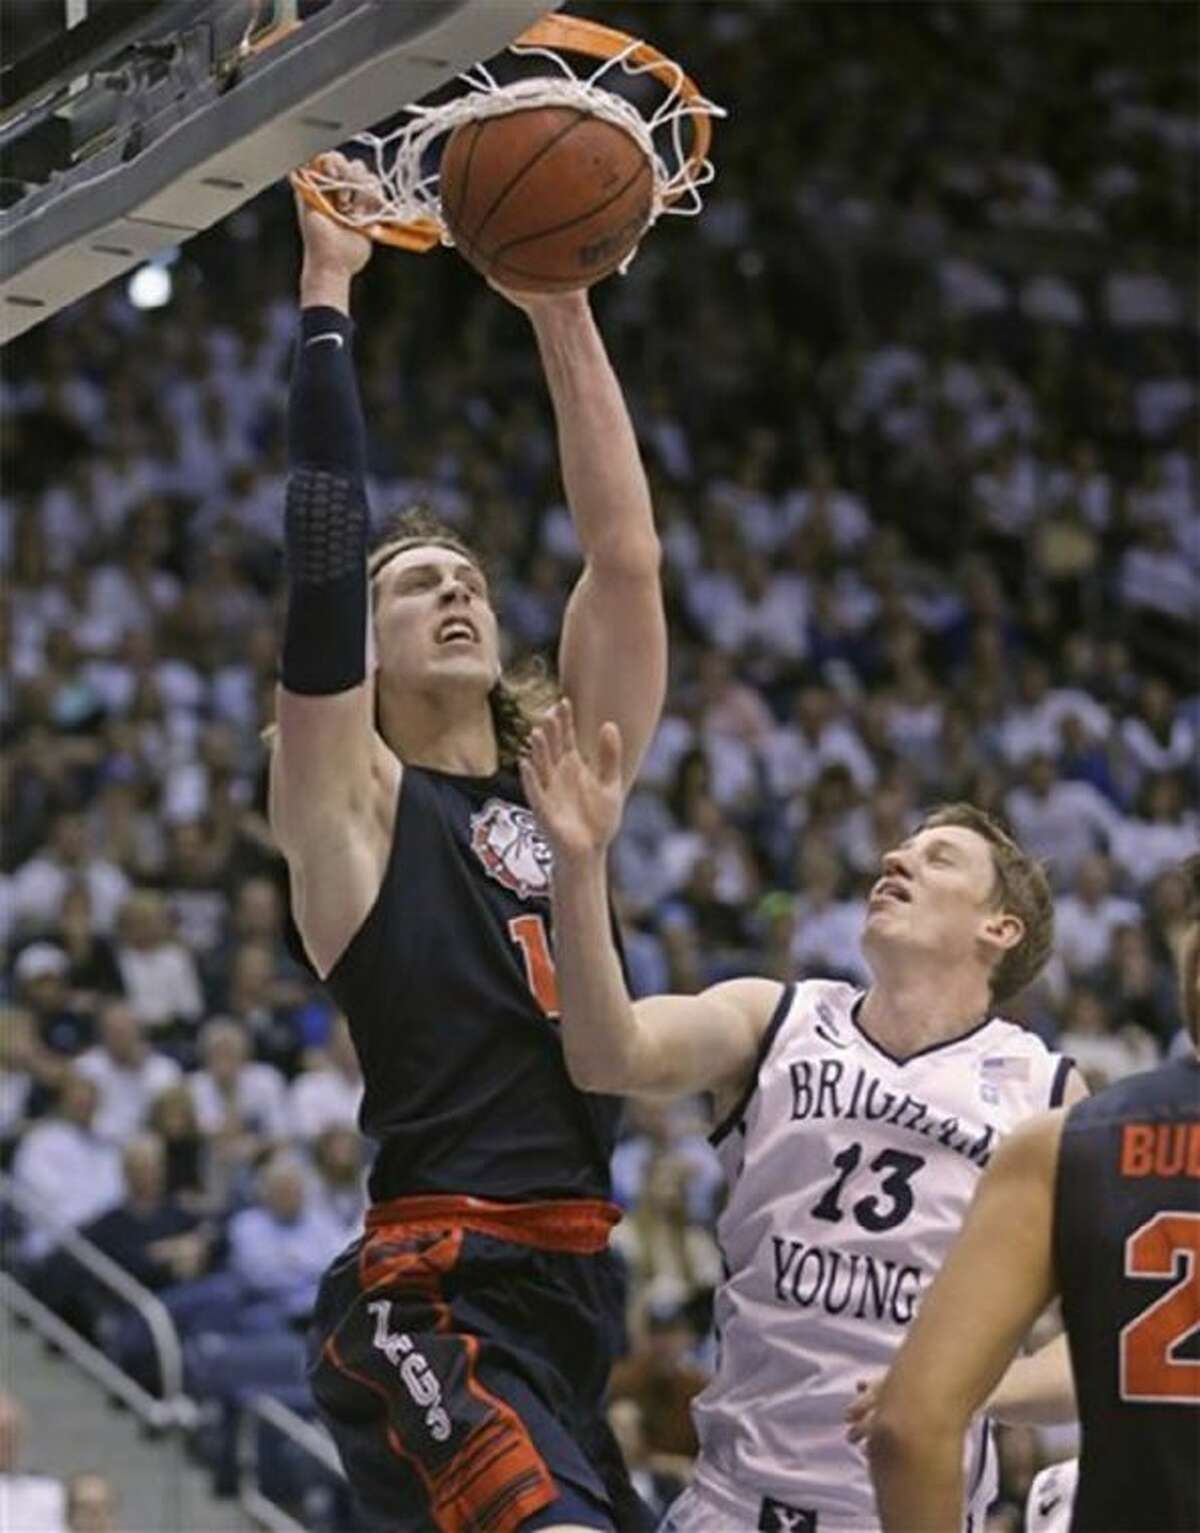 Gonzaga center Kelly Olynyk dunks against BYU. The Zags, representing a small Jesuit school in Spokane, Wash., are the nation's No. 1-ranked college basketball team.